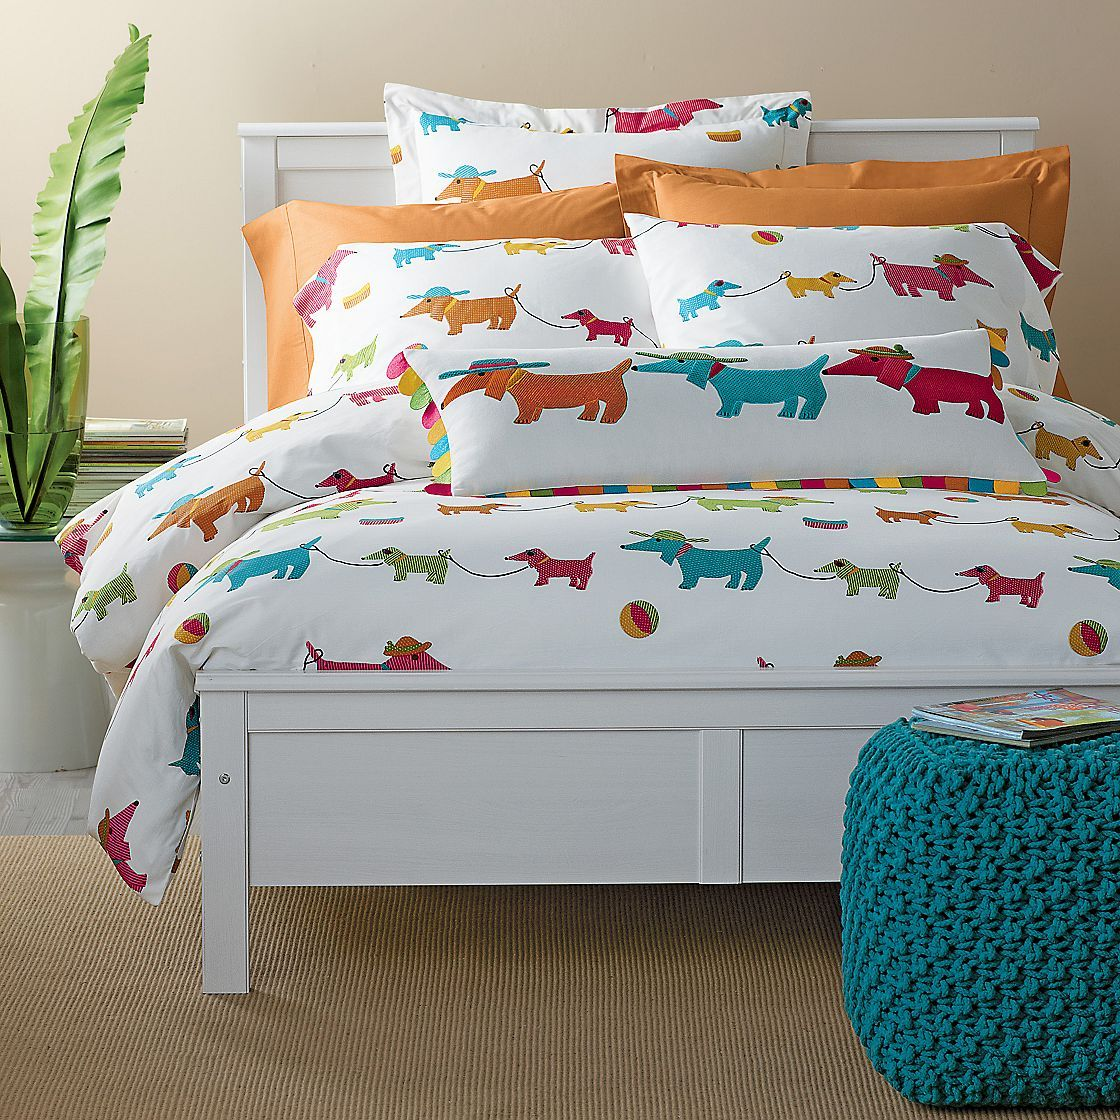 Summer Dogs Percale Bedding   The Company Store Too cute! Have got to order me a flat twin sheet for 19$ and make a couple sets of shams!